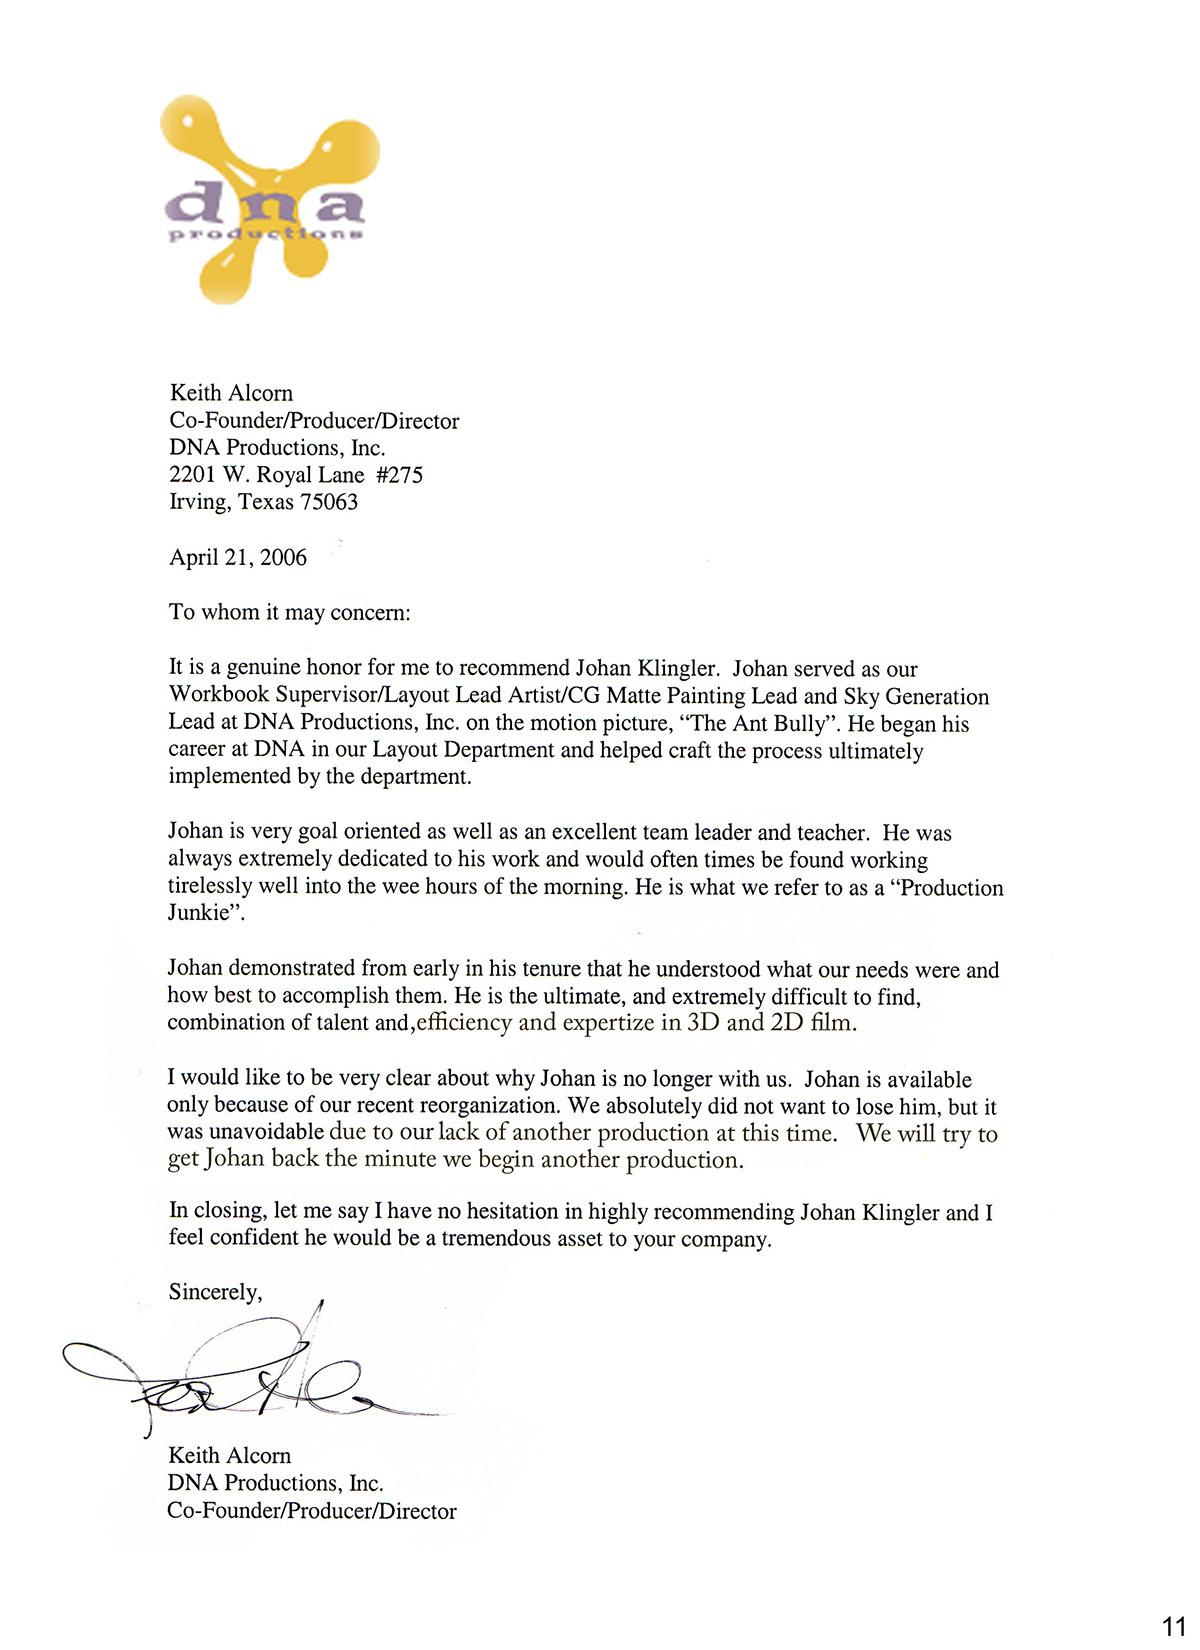 letters of recommendation from colleagues on behance